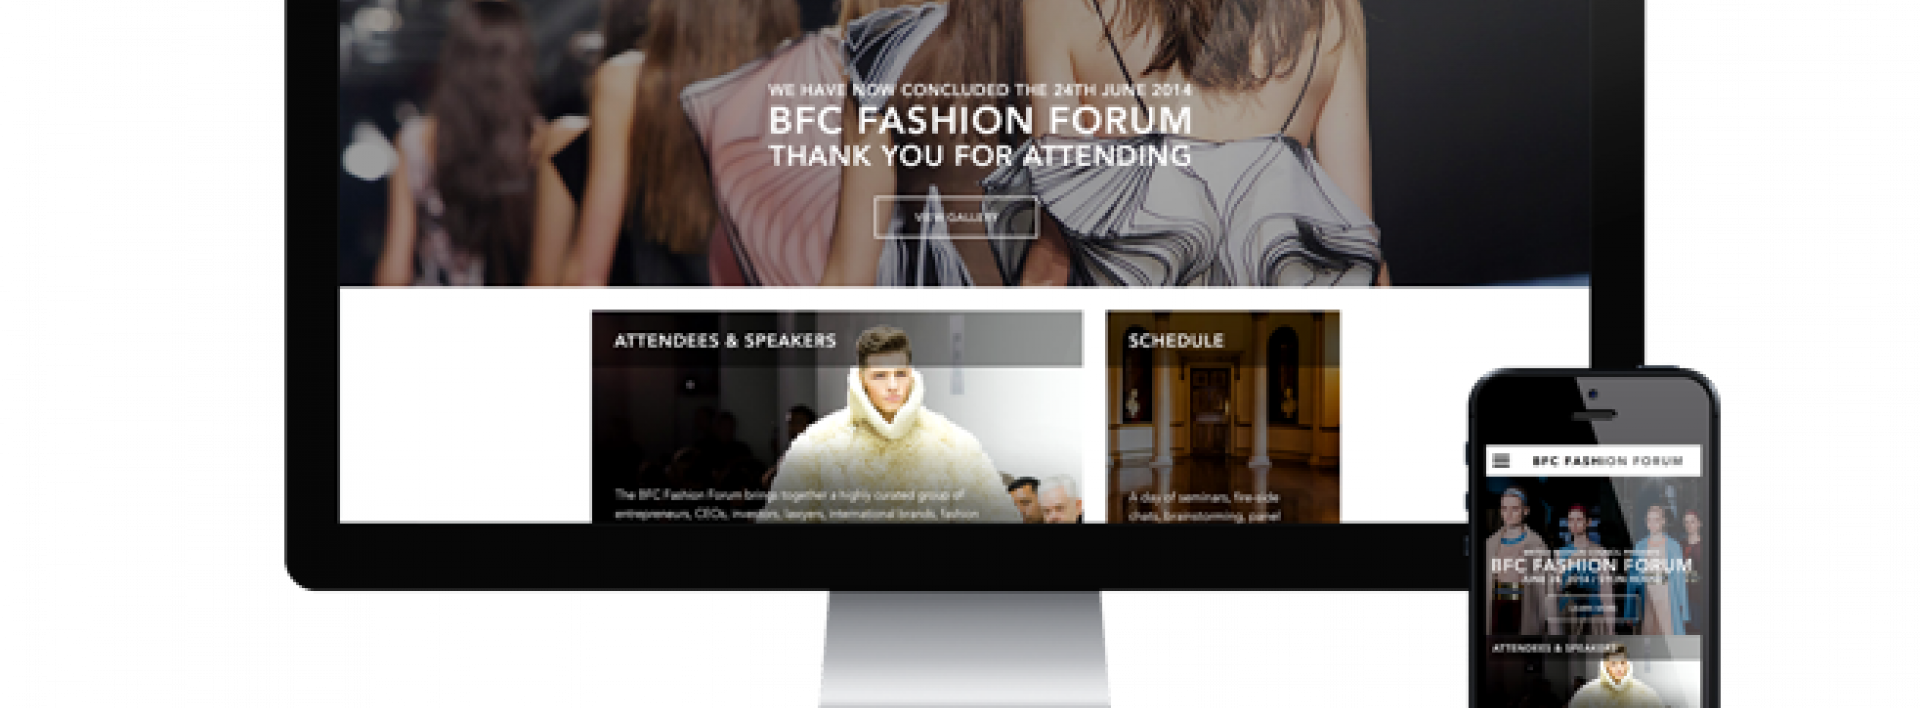 British Fashion Council BFC Fashion Forum Website and app built by Intergalactic